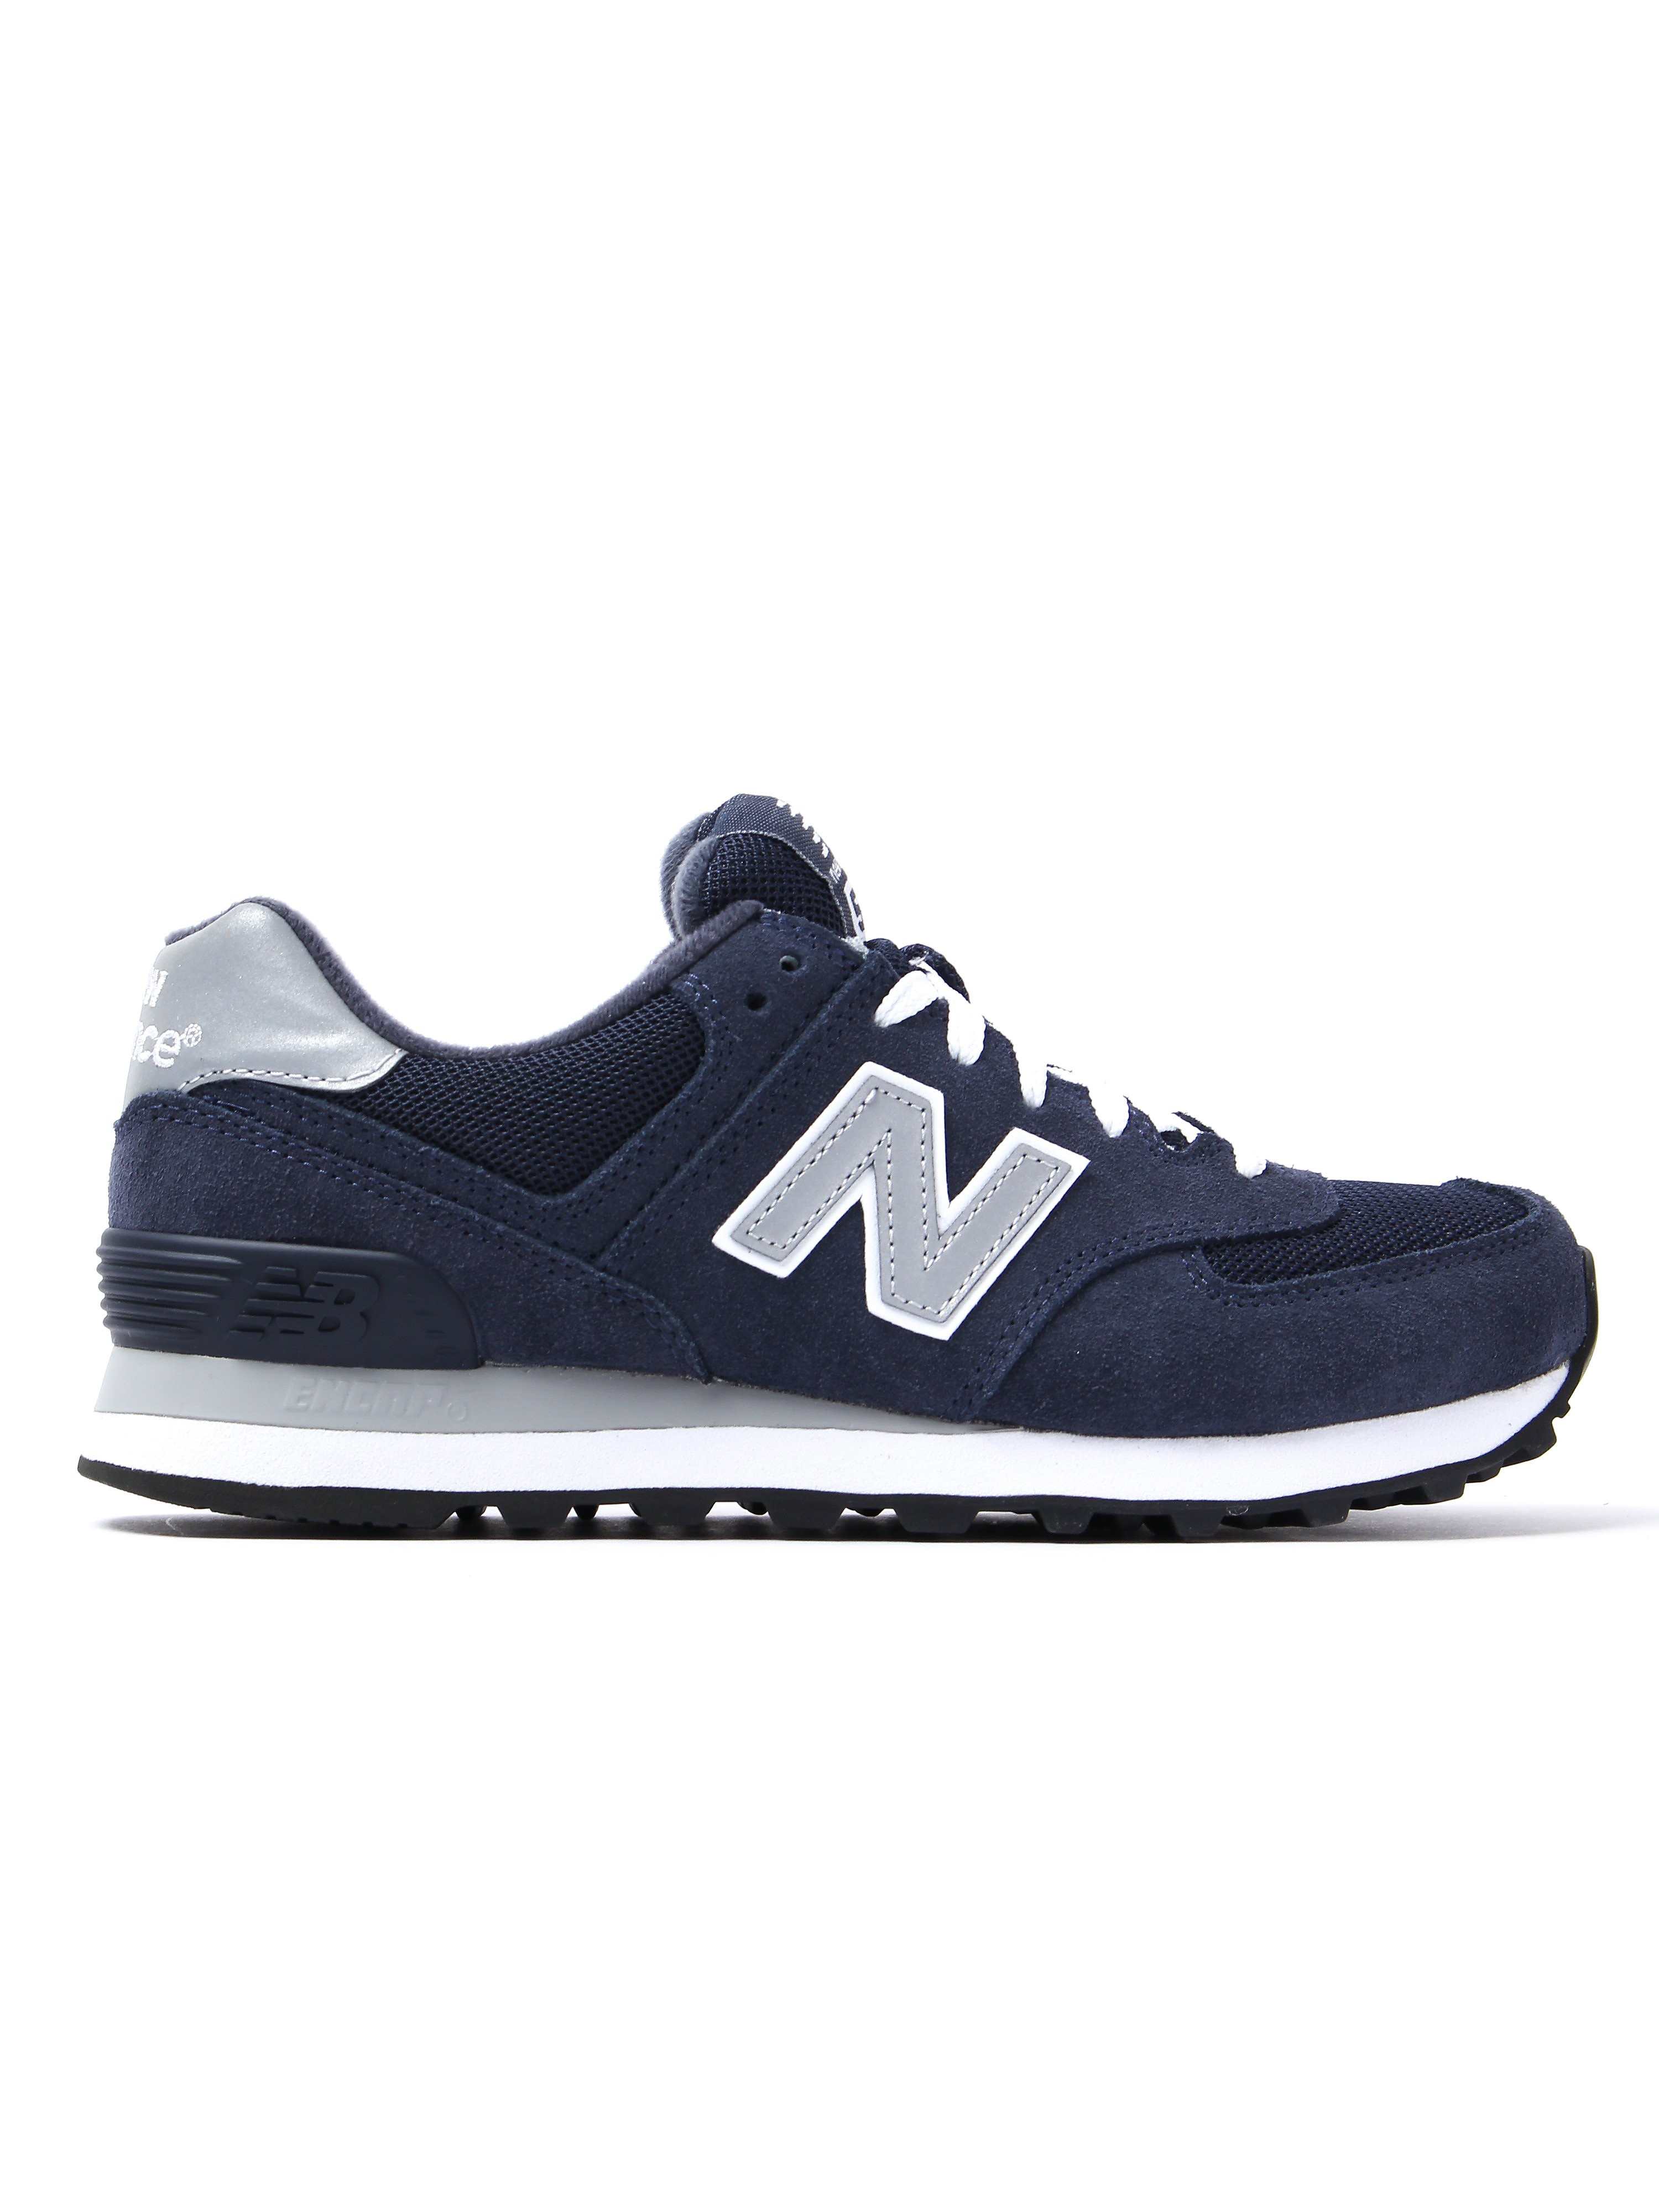 New Balance Women's 574 Low Top Trainers - Navy